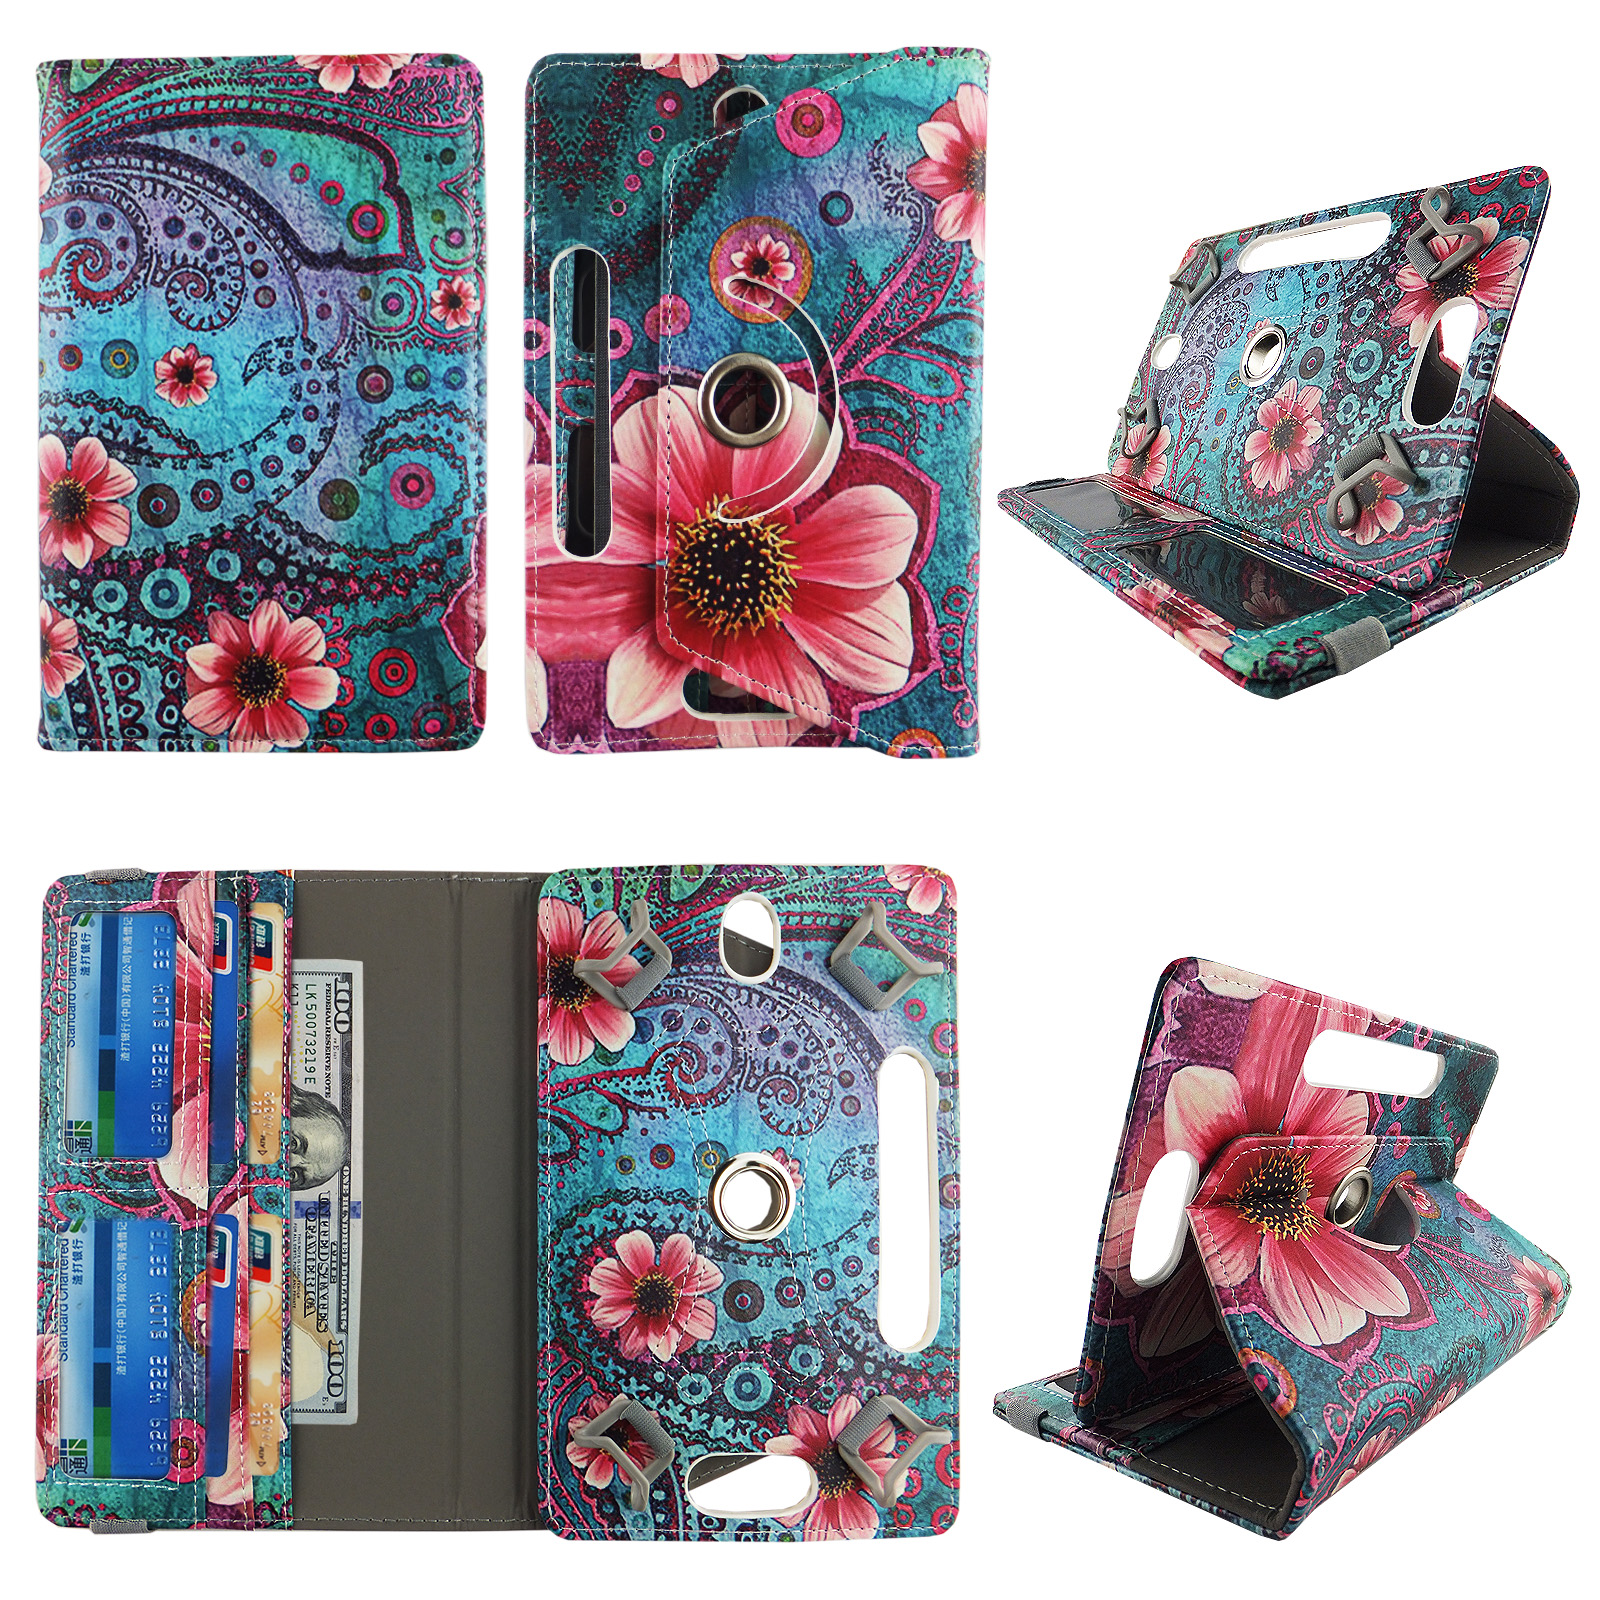 Wallet style for Samsung Galaxy Tab 4 tablet case 7 inch android tablet cases 7 inch Slim fit standing protective rotating universal PU leather cash Pocket cover Pink Flower Vintage